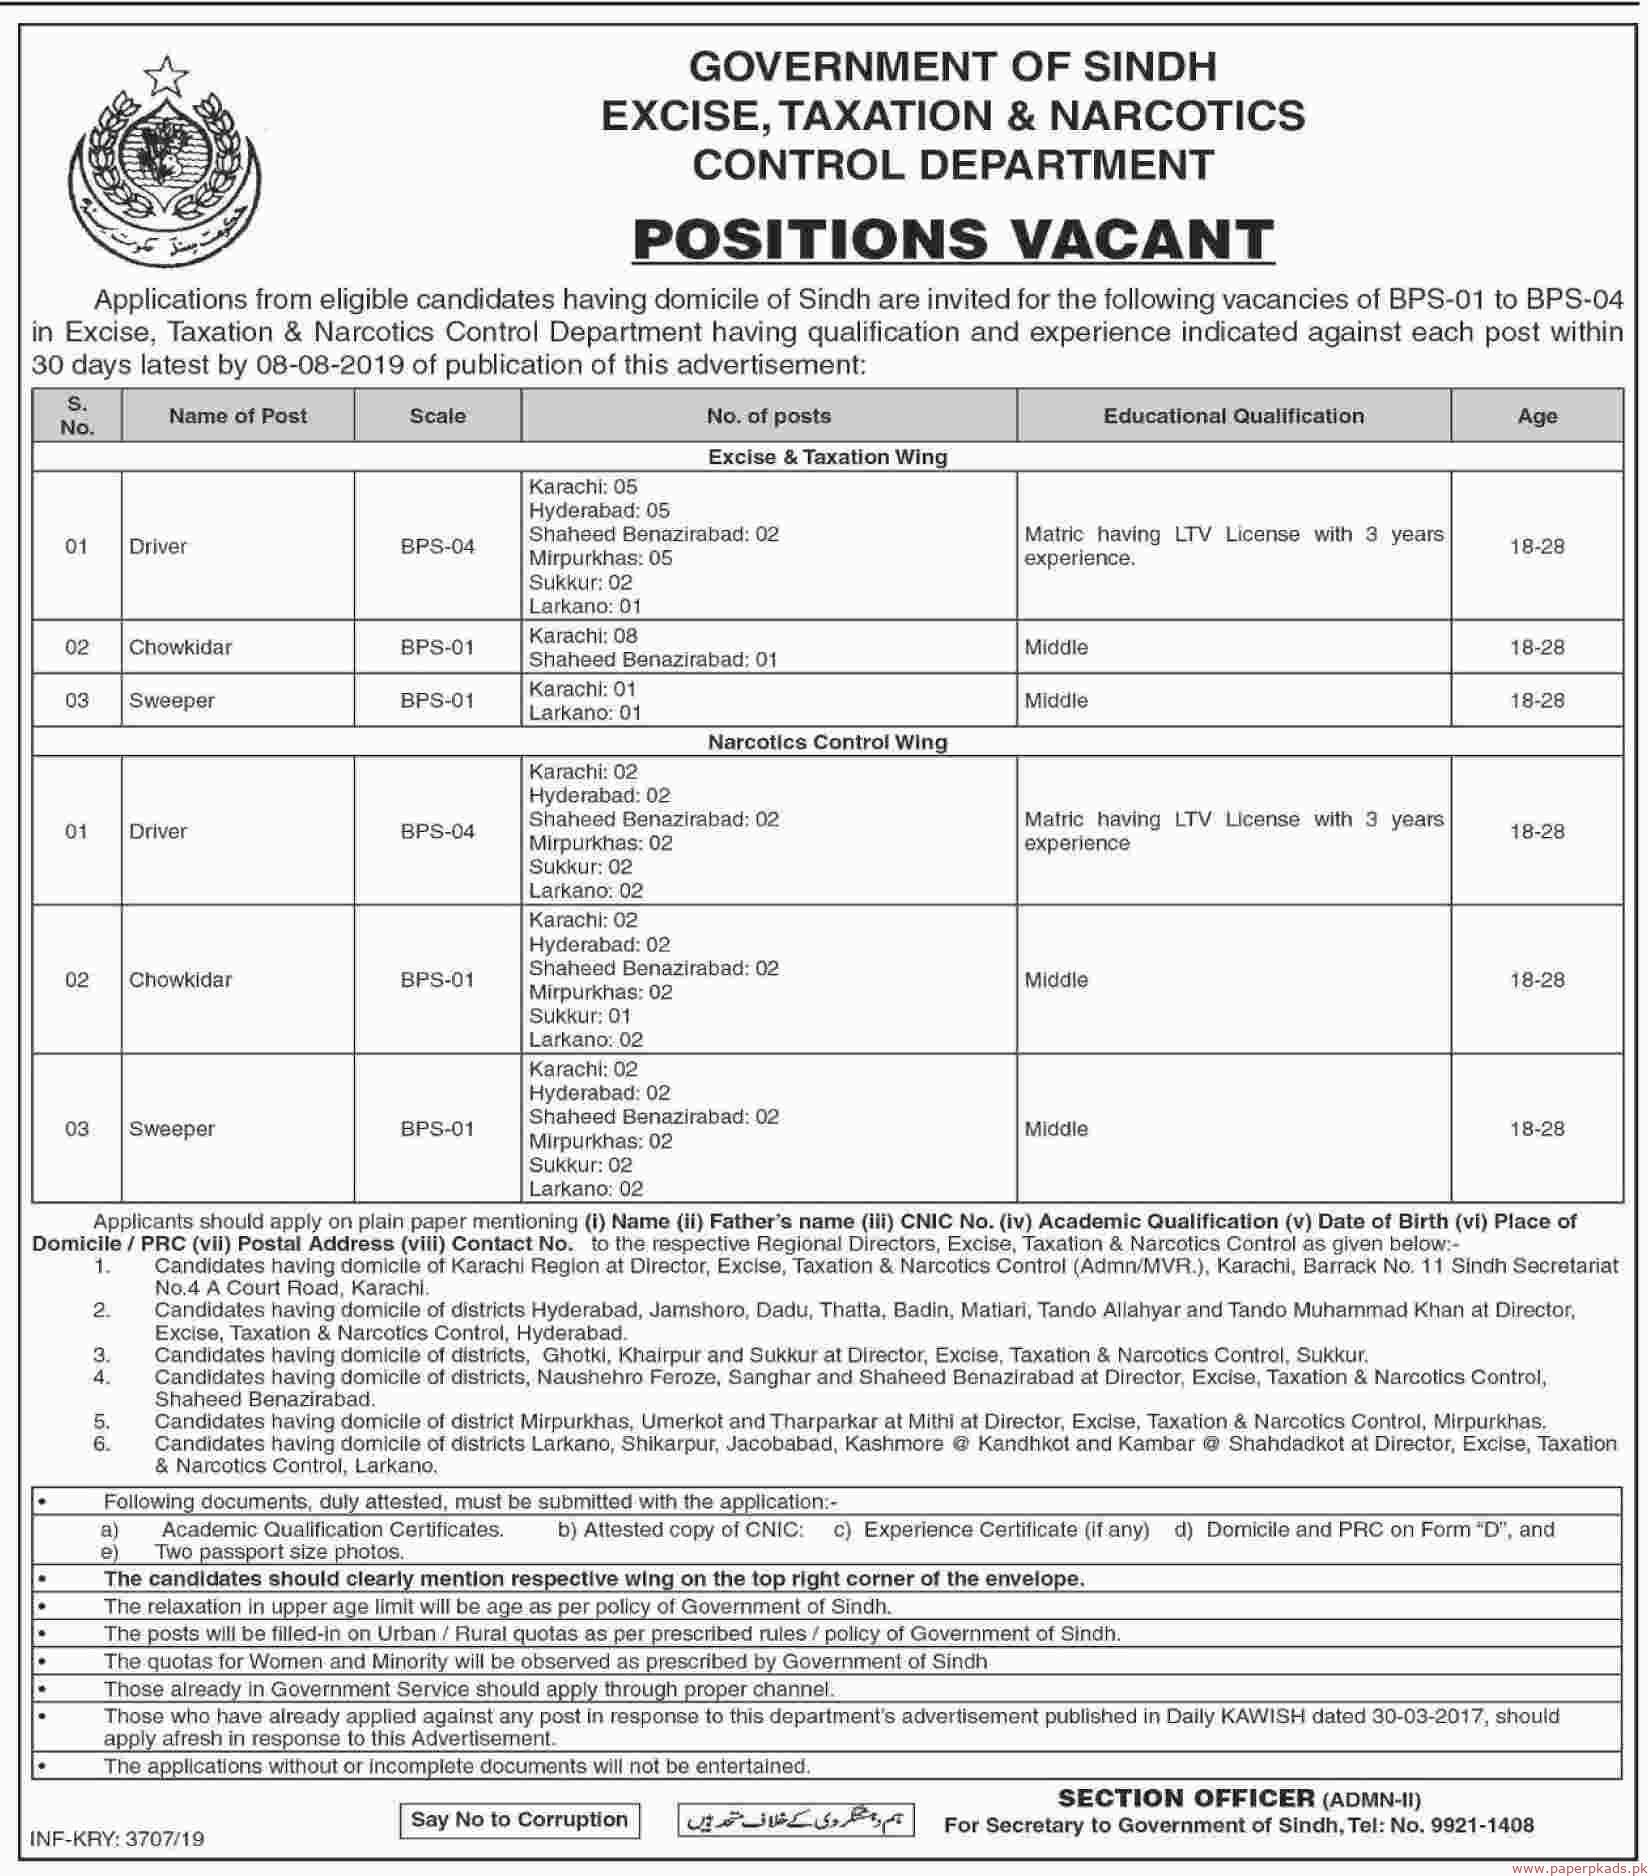 Government of Sindh Excise Taxation & Narcotics Control Department Jobs 2019 Latest